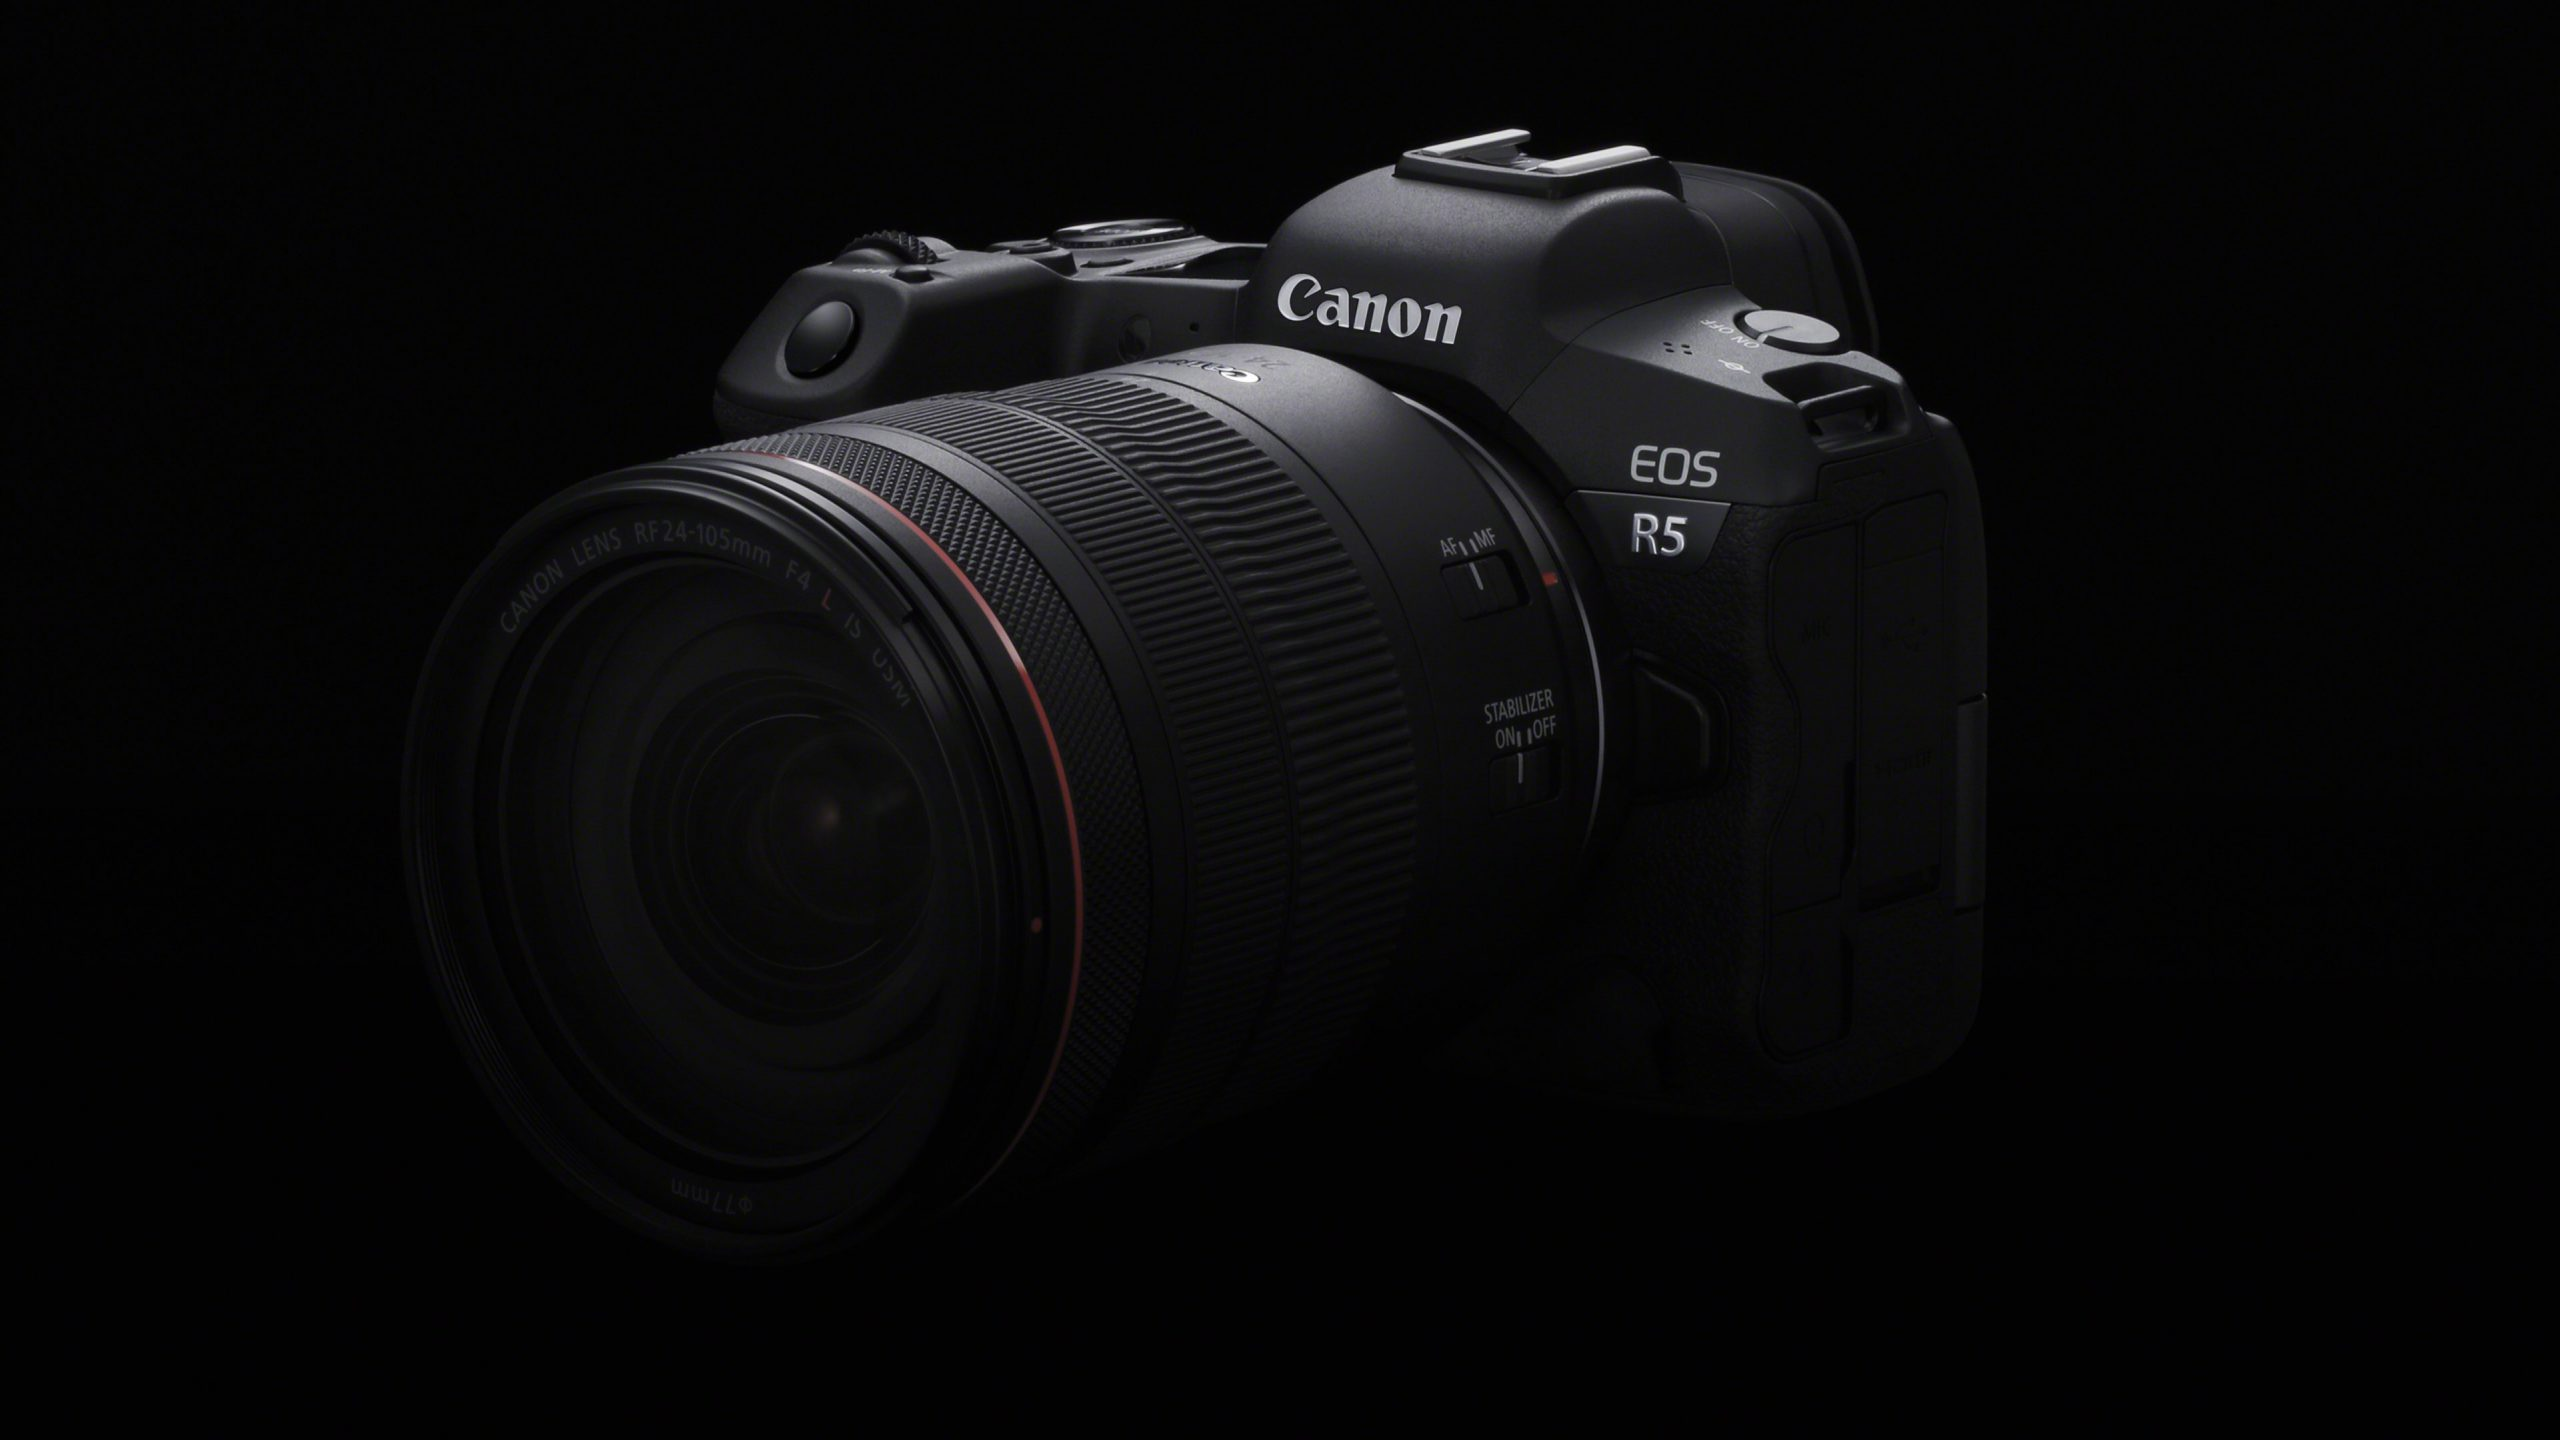 Canon EOS R5 with lens